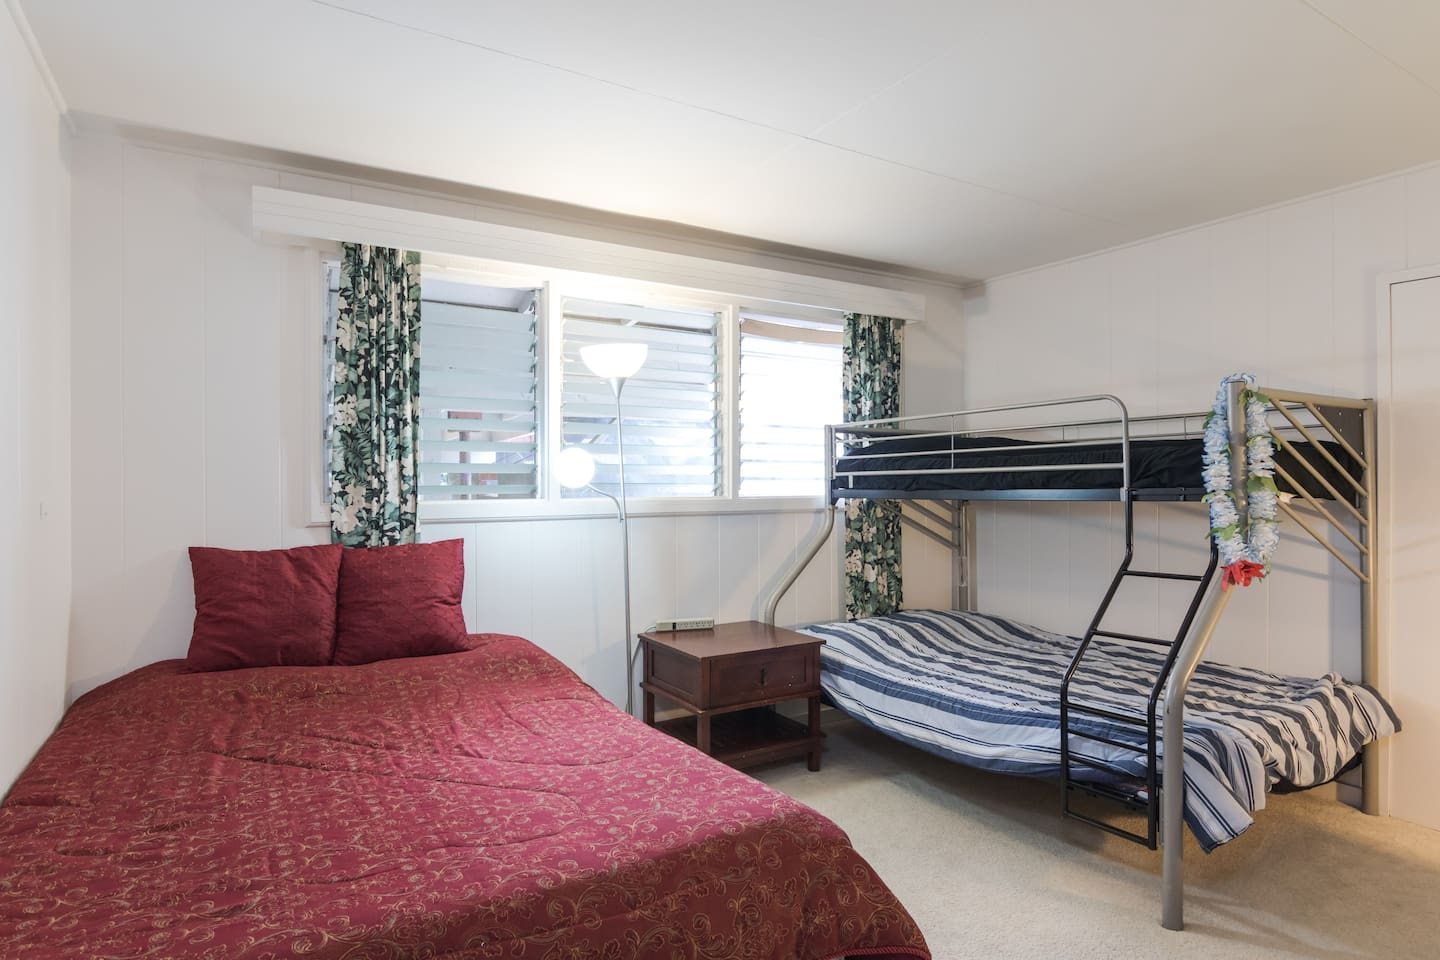 Fit an entire group with your queen bed AND a twin/full bunk bed!